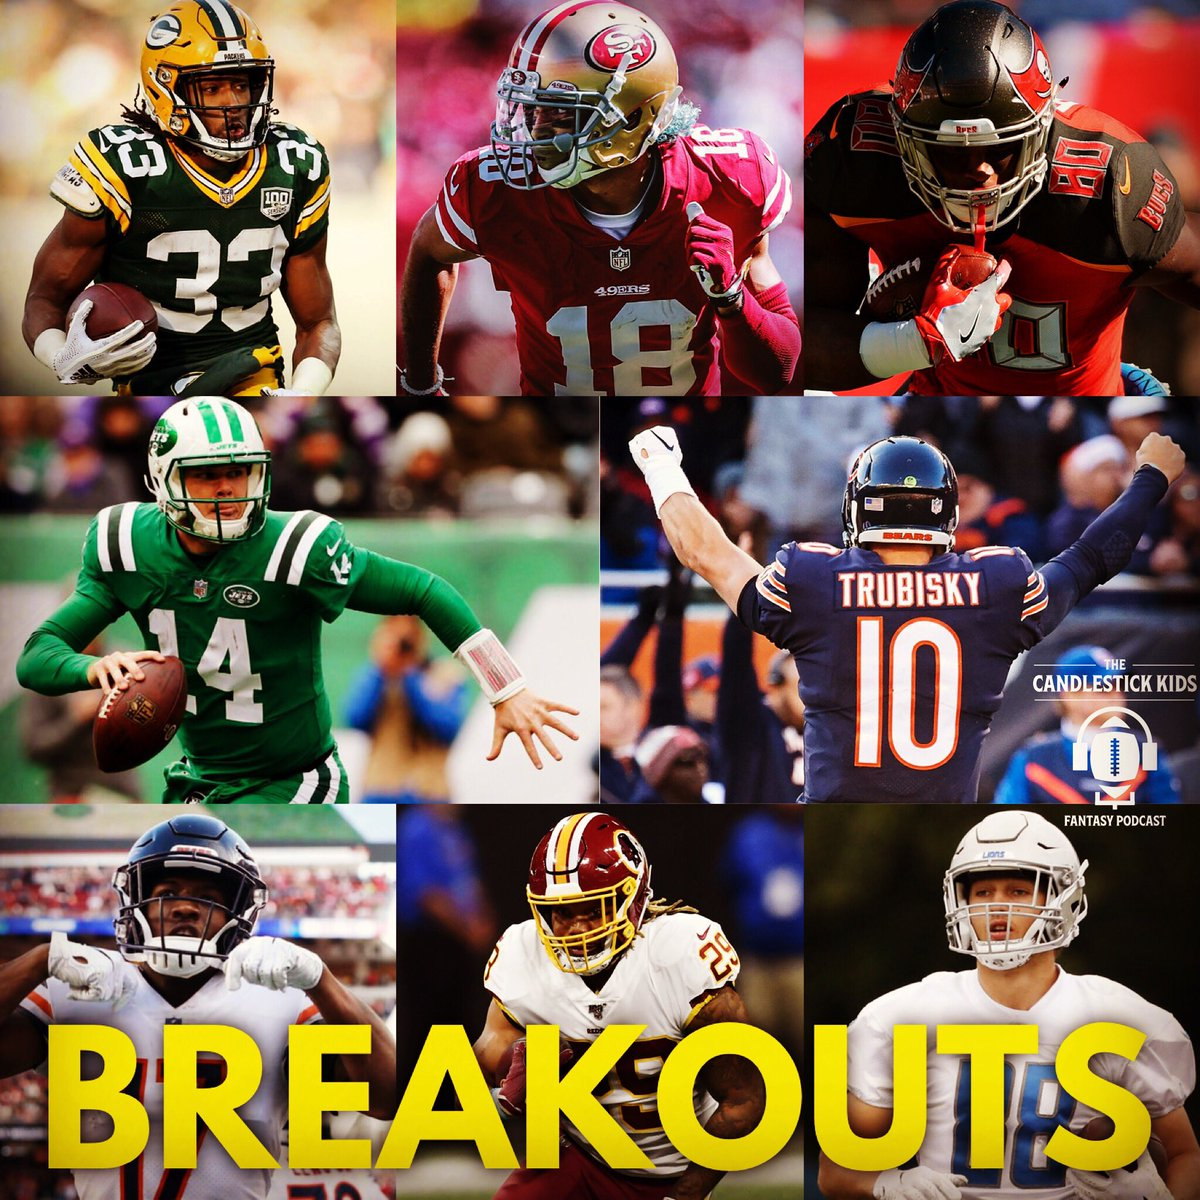 On episode 109 I discuss my top Breakouts per position with former TCK Pod co-host Daniel - QB: Mitch Trubiski / Sam Darnold RB: Aaron Jones / Derrius Guice WR: Dante Pettis / Anthony Miller TE: OJ Howard / TJ Hockenson #FantasyFootball https://t.co/lJAKuPeGNd